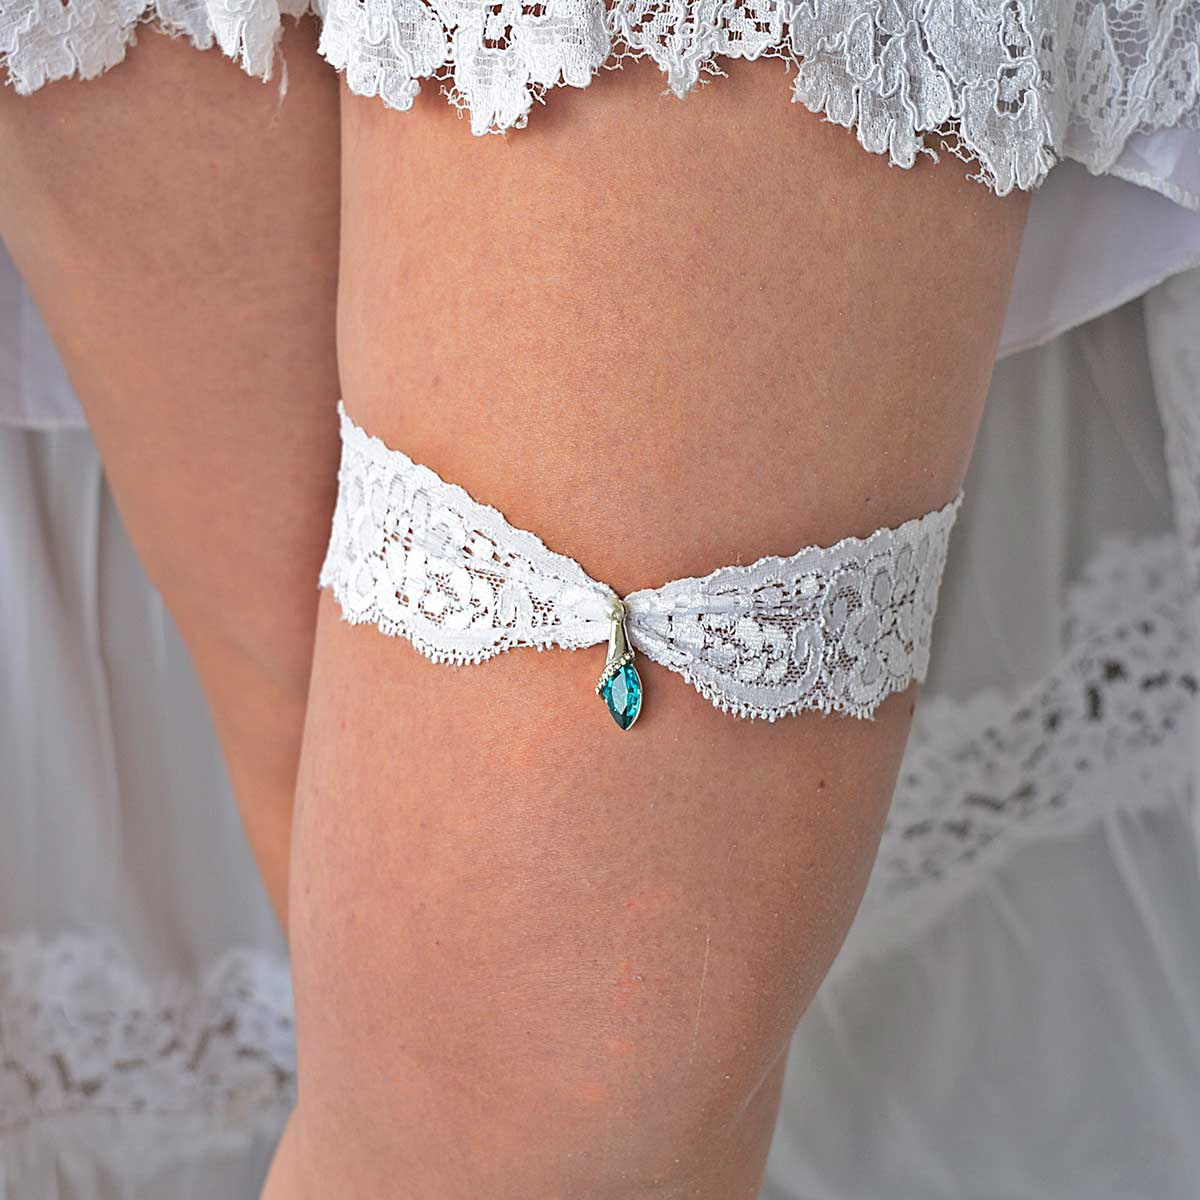 Clear & Turquoise Rhinestone Wedding Garter Belt - Wedding Garter - SuzannaM Designs